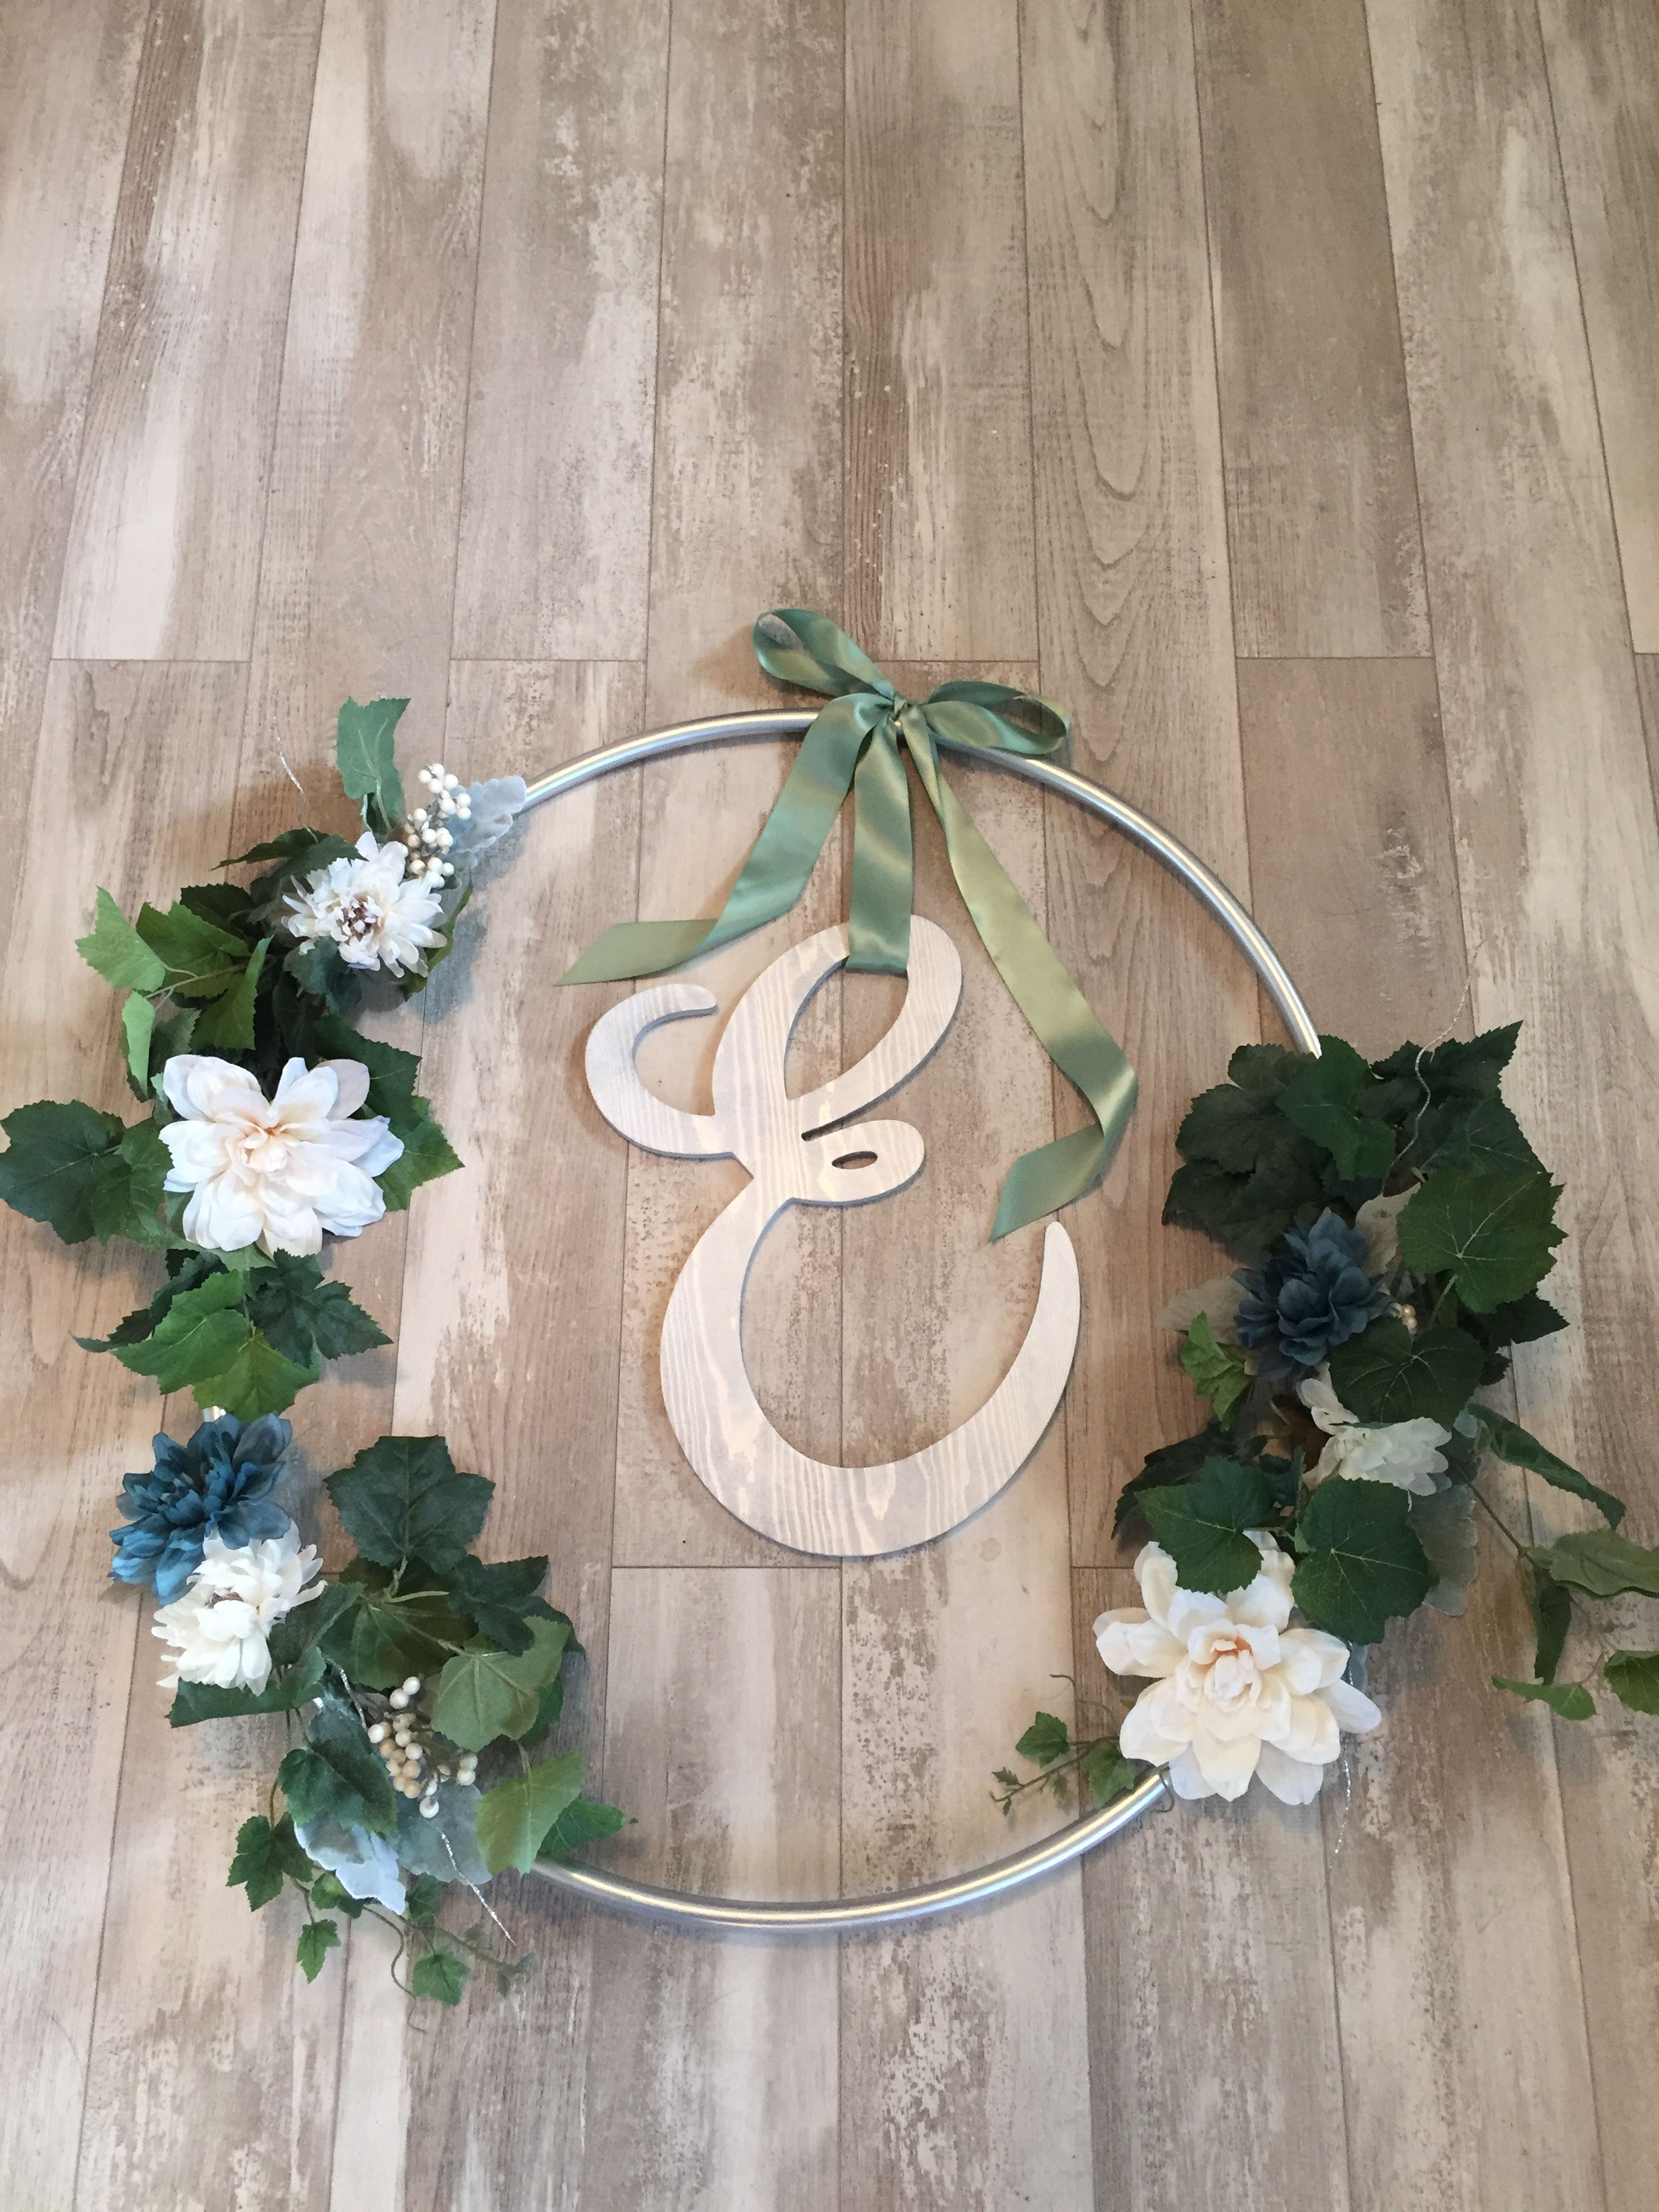 bf7dd0122a Giant wreath for front of the house made with a hoola hoop Wedding Door  Decorations